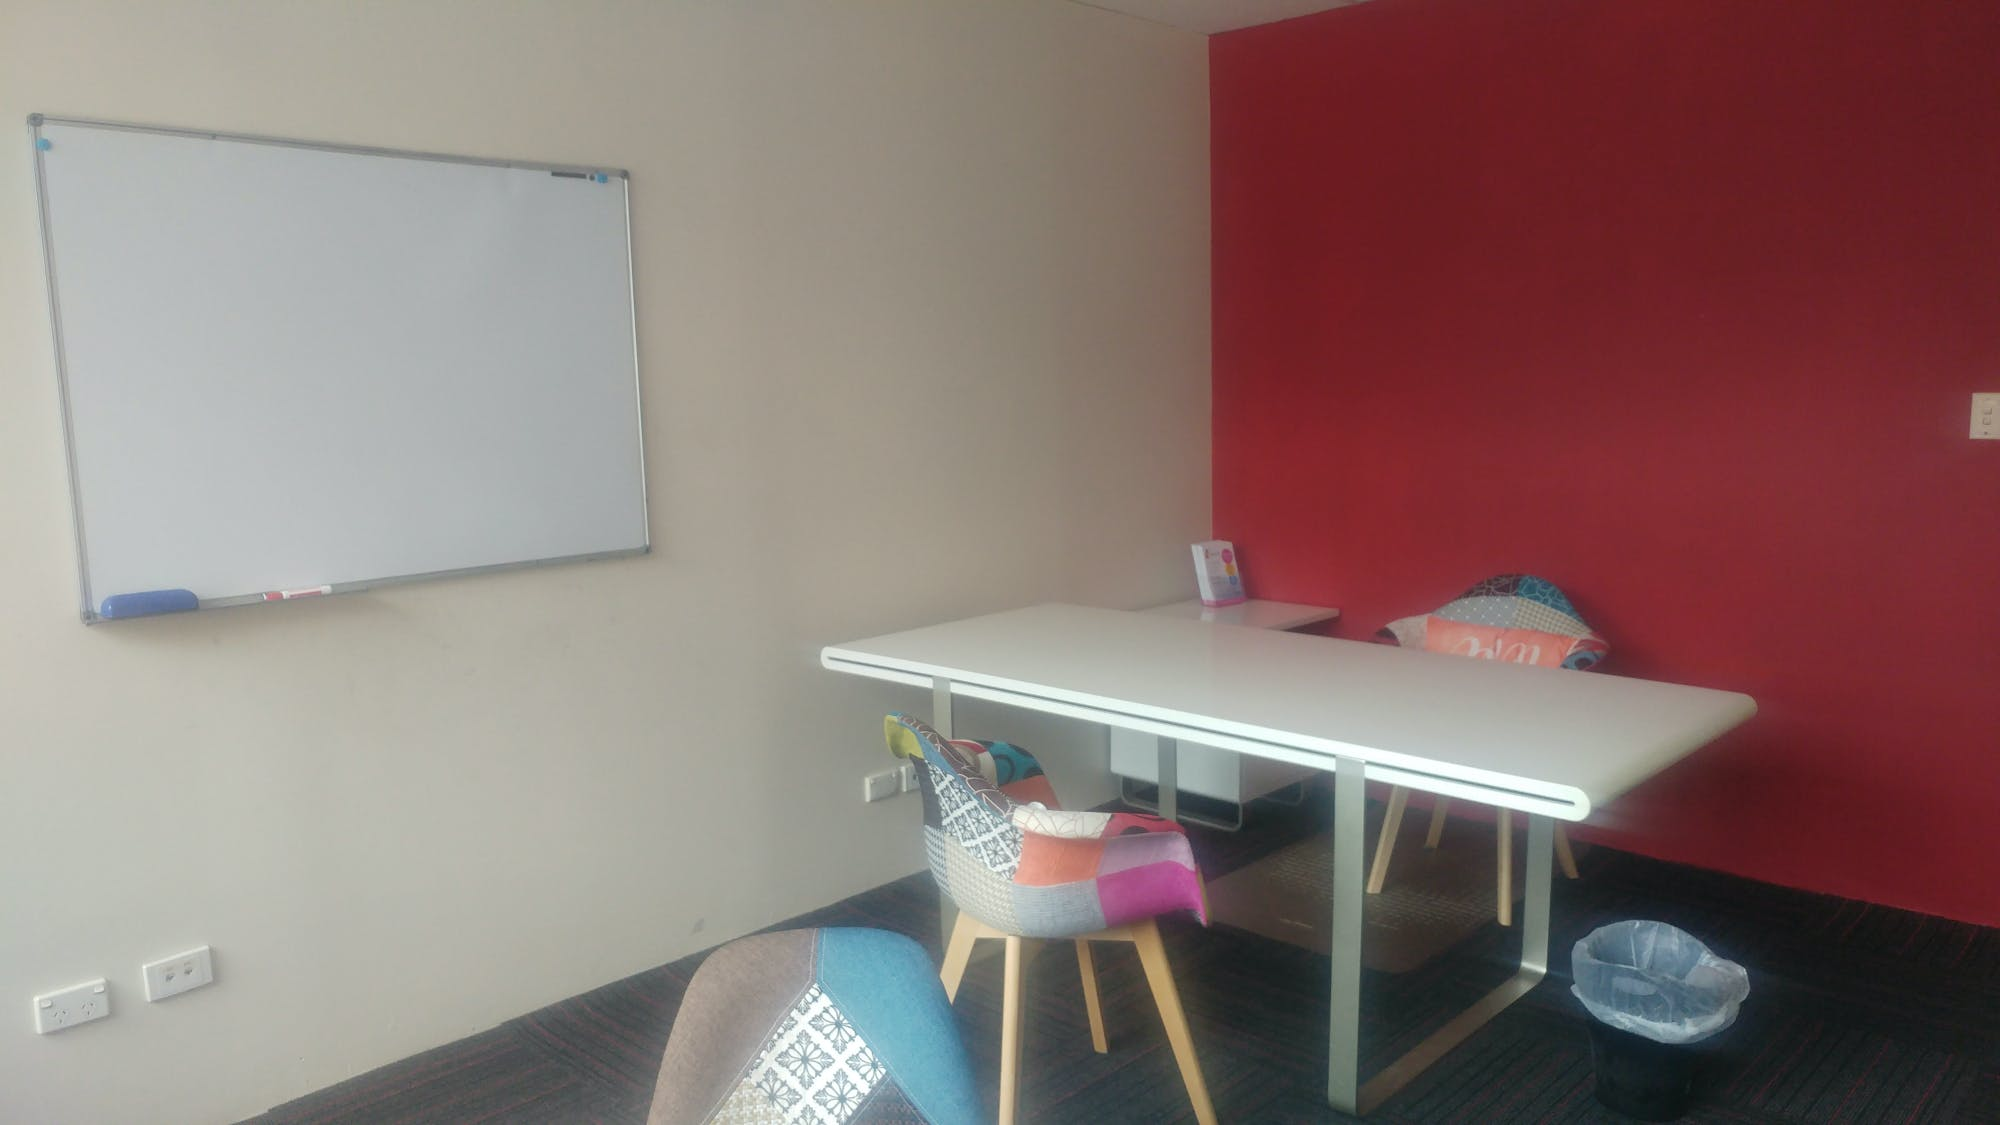 Parramatta Psychology Clinic - Room 1, private office at 22 Hunter Building, image 1